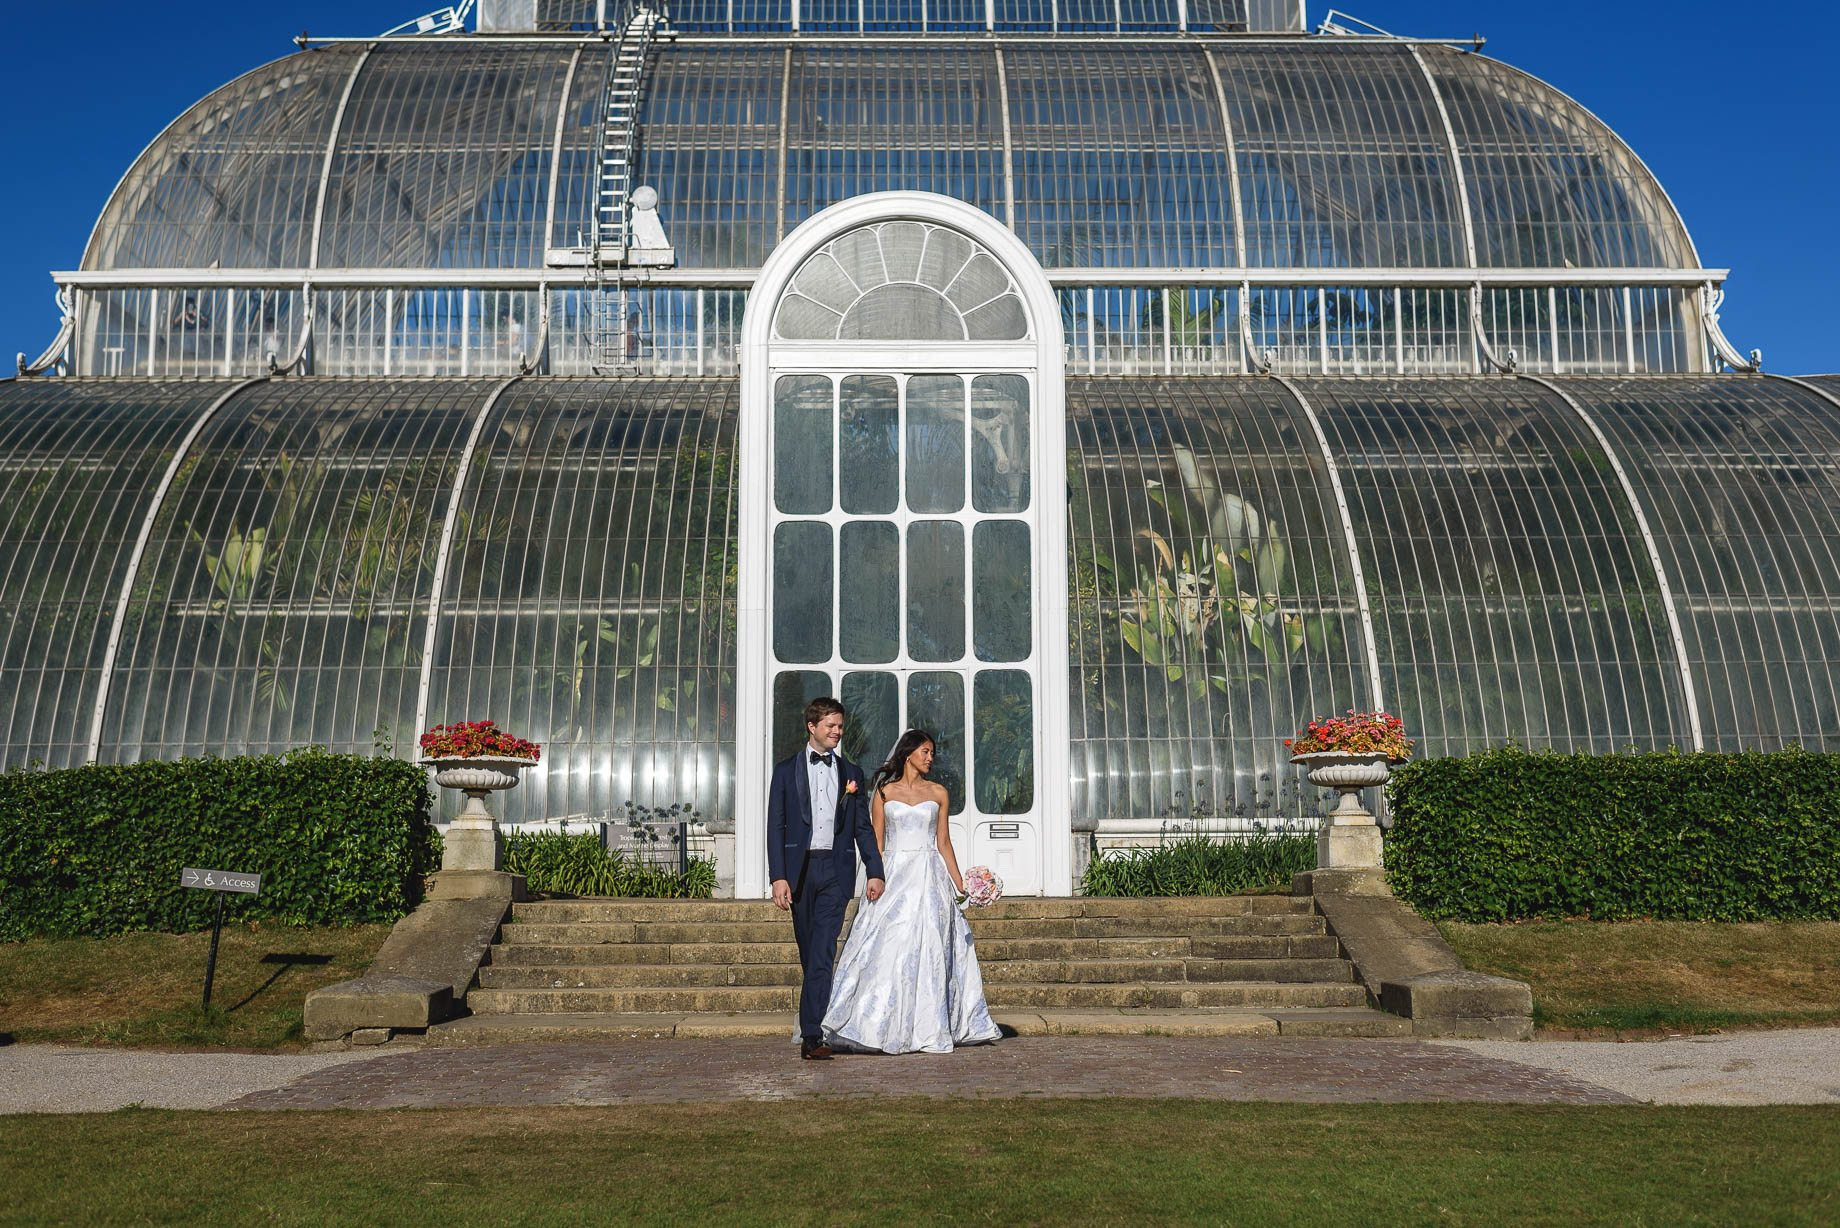 Kew Gardens wedding photography - Guy Collier Photography - Gloria and Frederik (87 of 173)